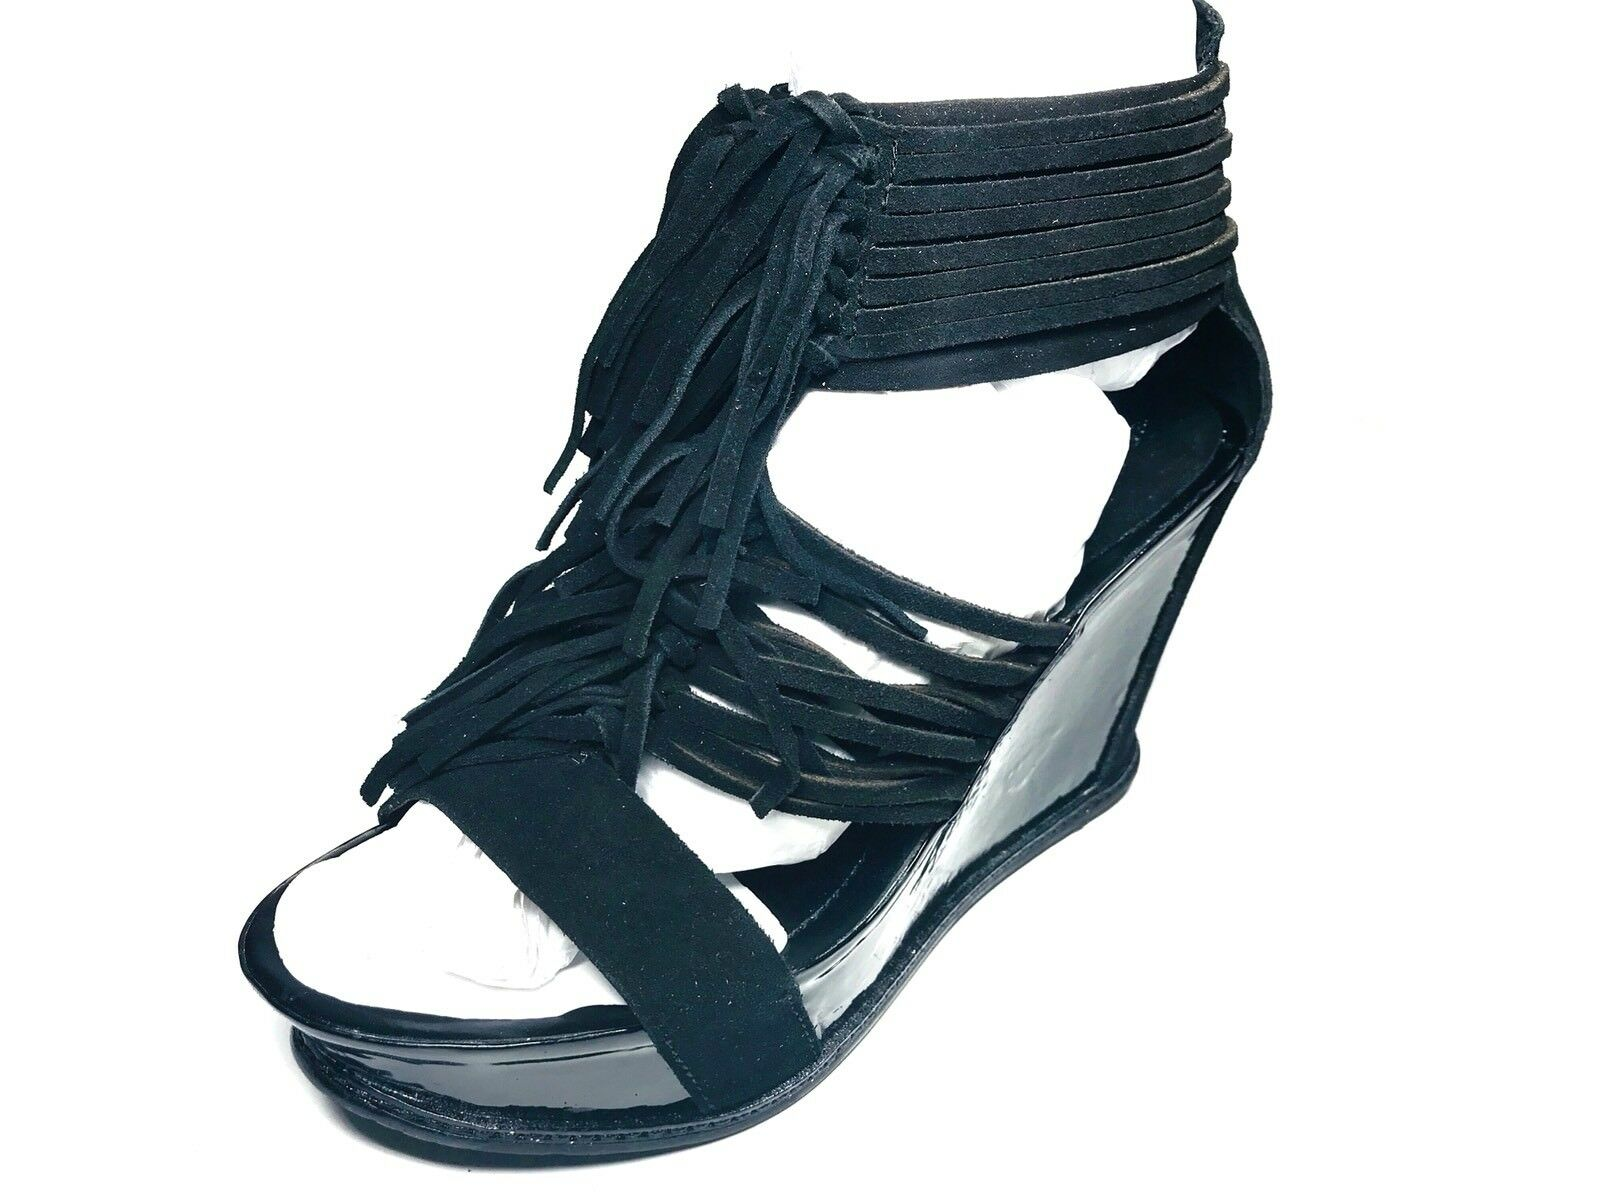 a buon mercato Kenneth Cole REACTION SUEDE Wedge HEELS Ankle Ankle Ankle Fringe Sandals Open nero Patent  migliore vendita